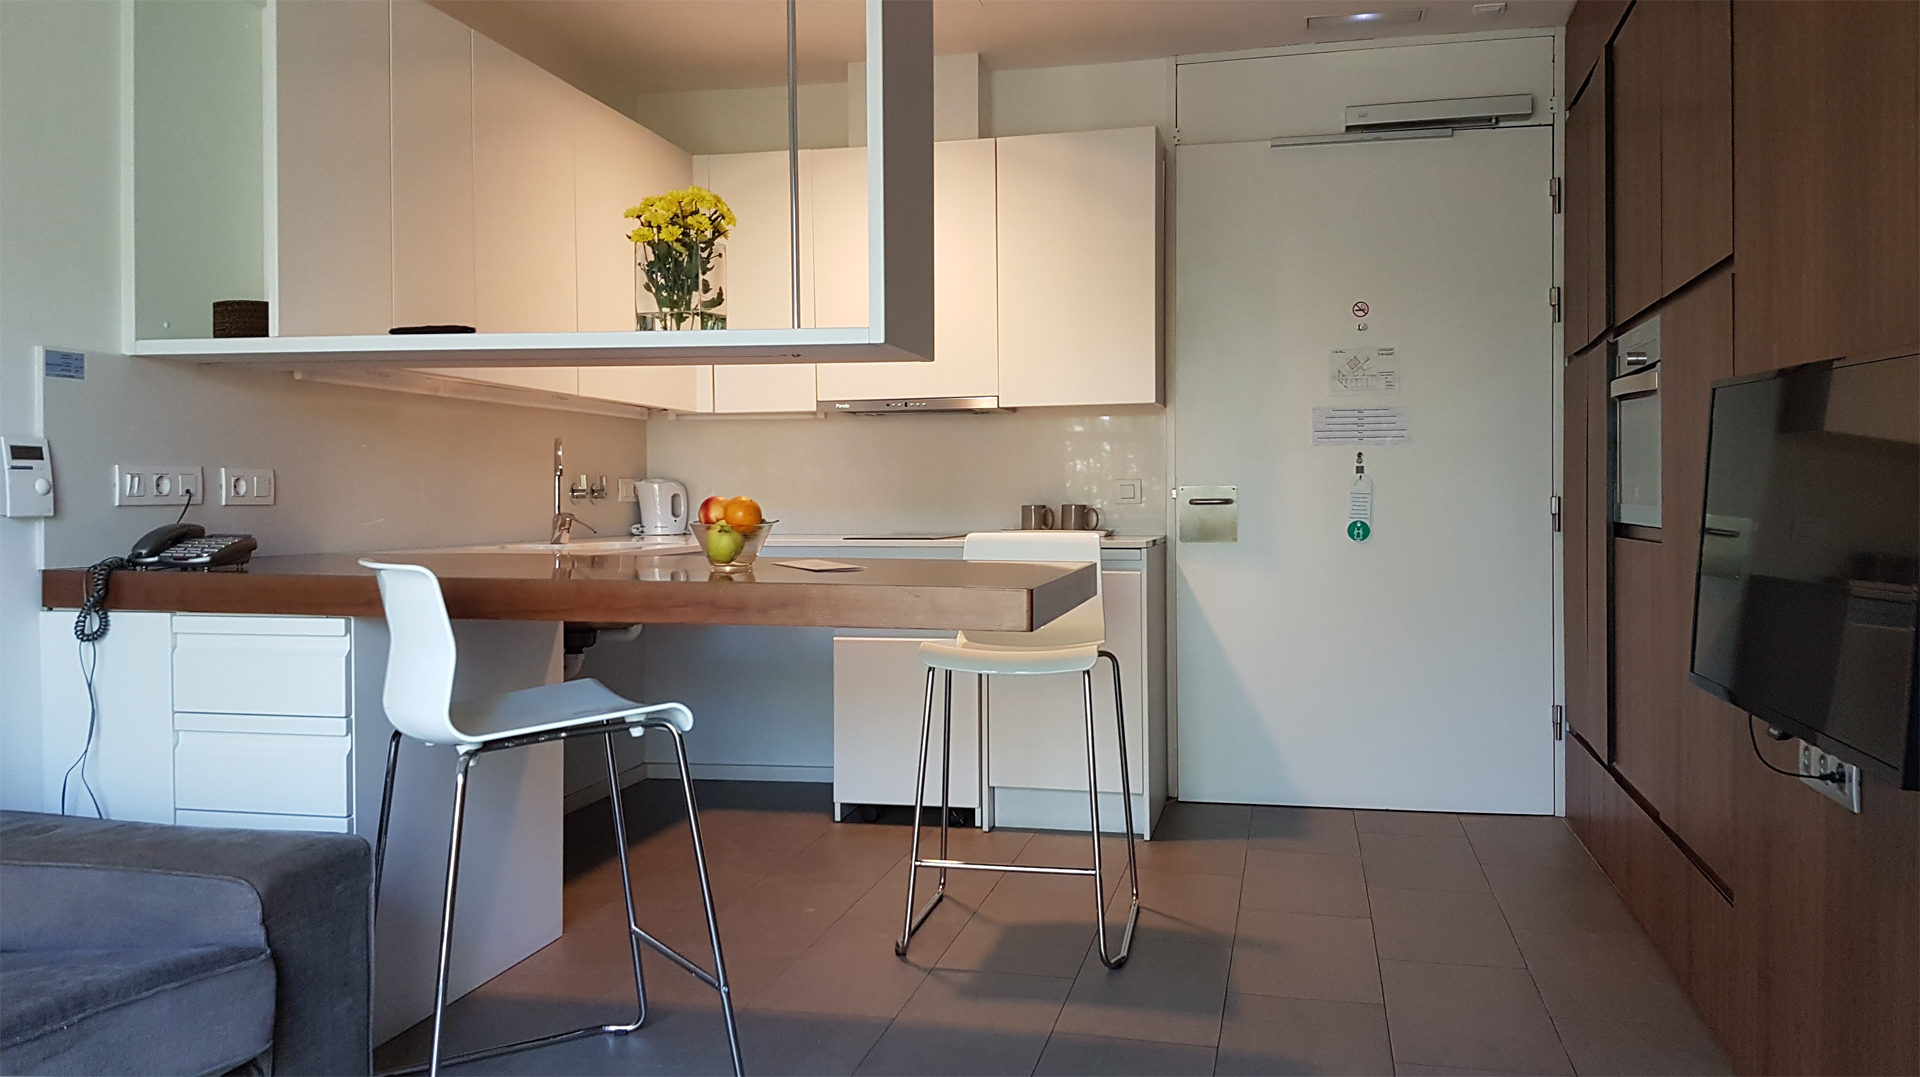 mics-sant-jordi-apartment-kitchen-livingroom